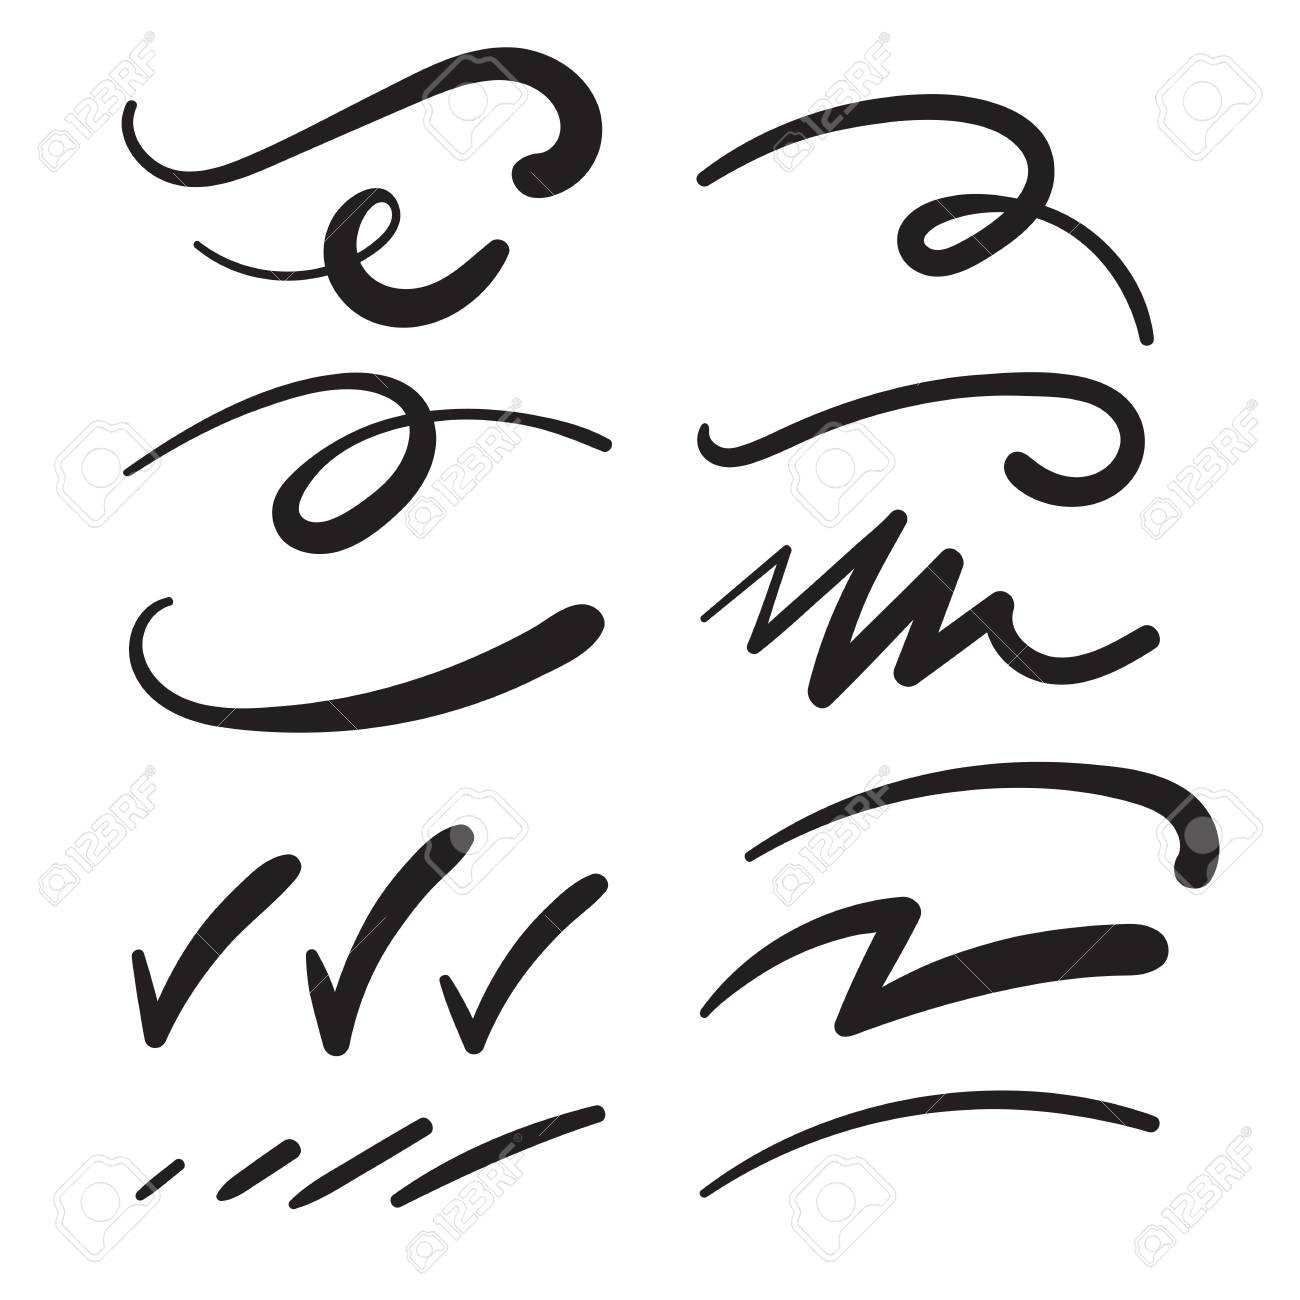 Swishes, Swashes, Swoops, Swooshes, Scribbles, & Squiggles for Typography Emphasis - 99233337